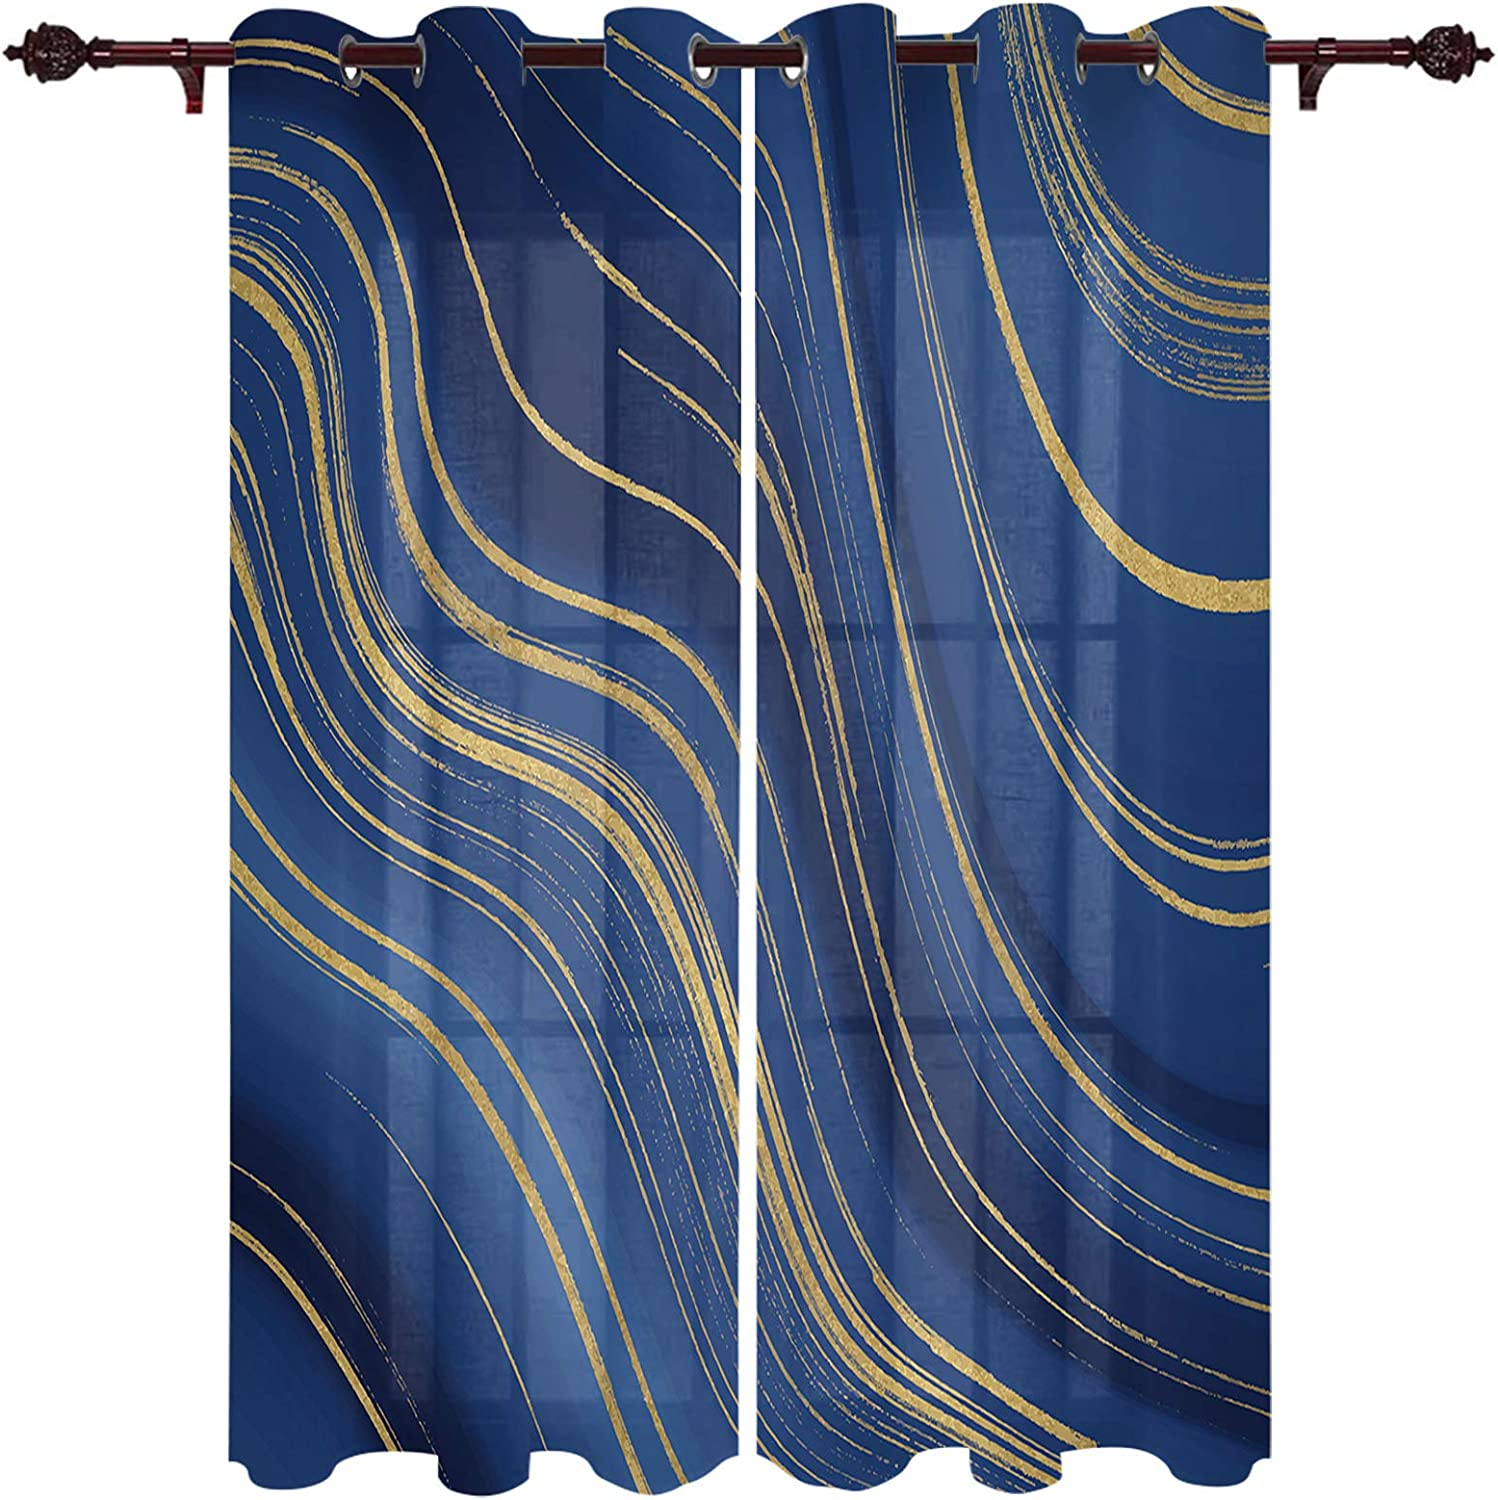 Semi Sheer Curtain Window Treatment Living OFFicial Ro for quality assurance Panels